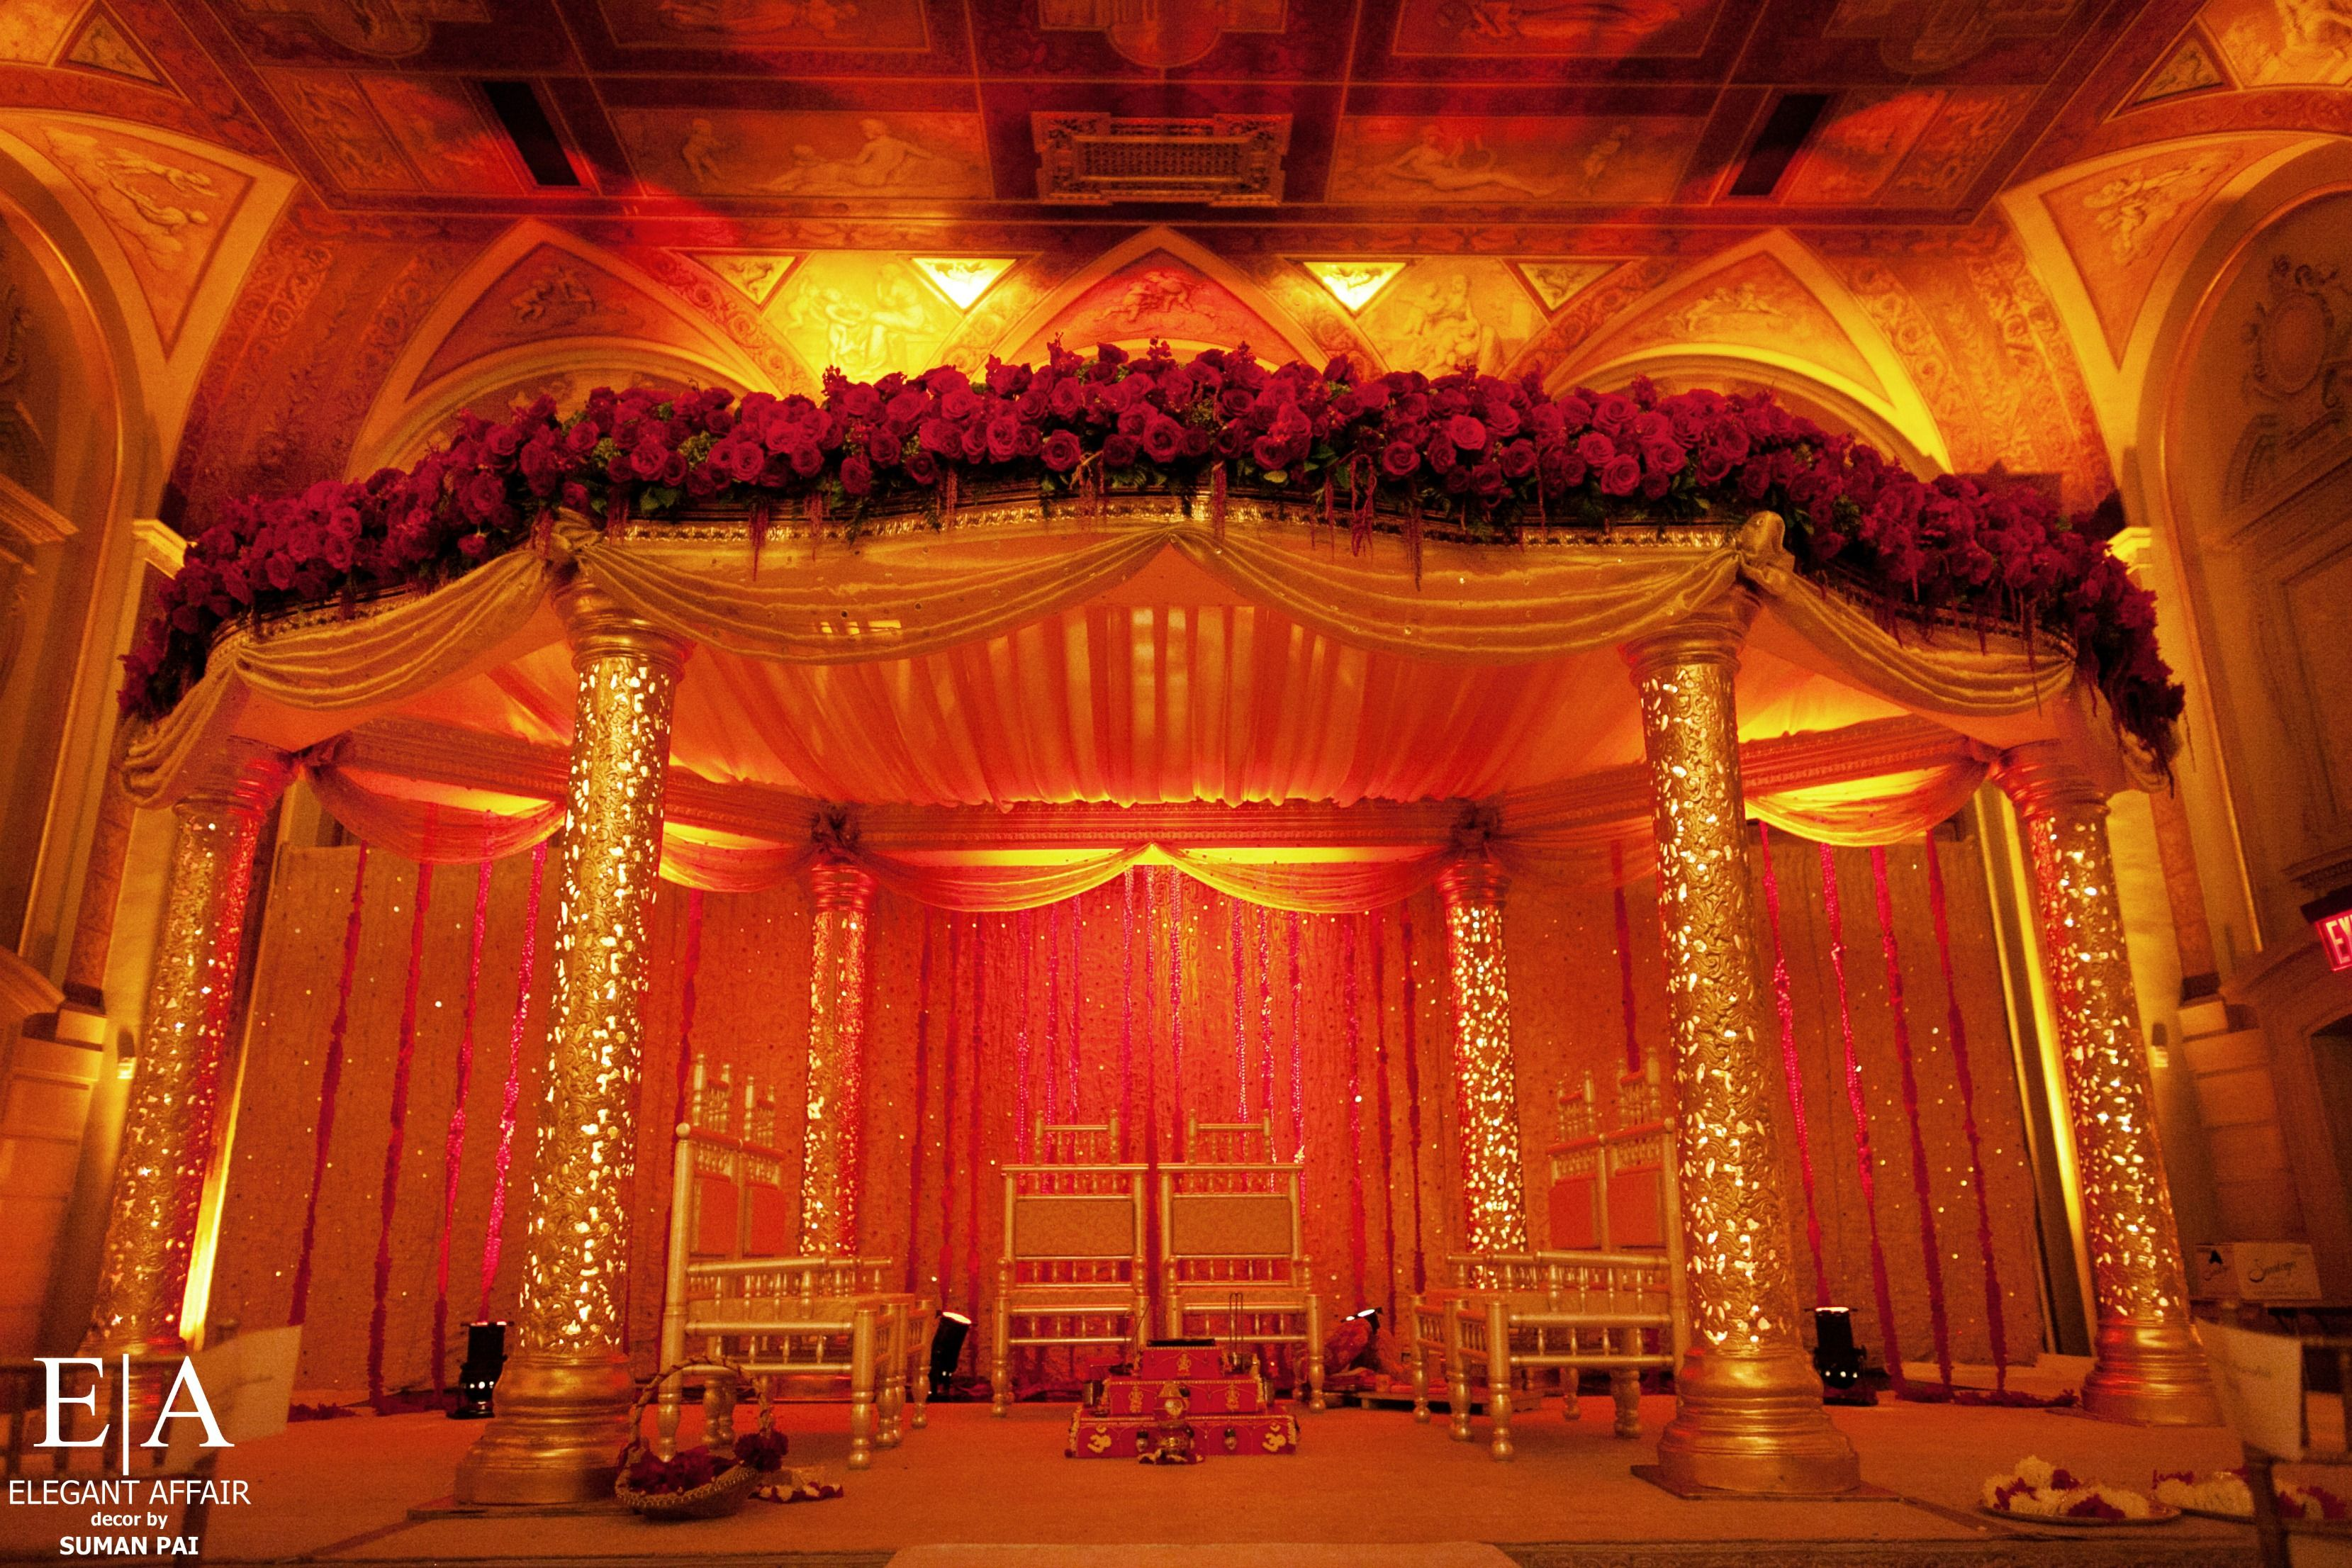 oval mandap, gold lighted pilars, red floral panel, canopy ceiling